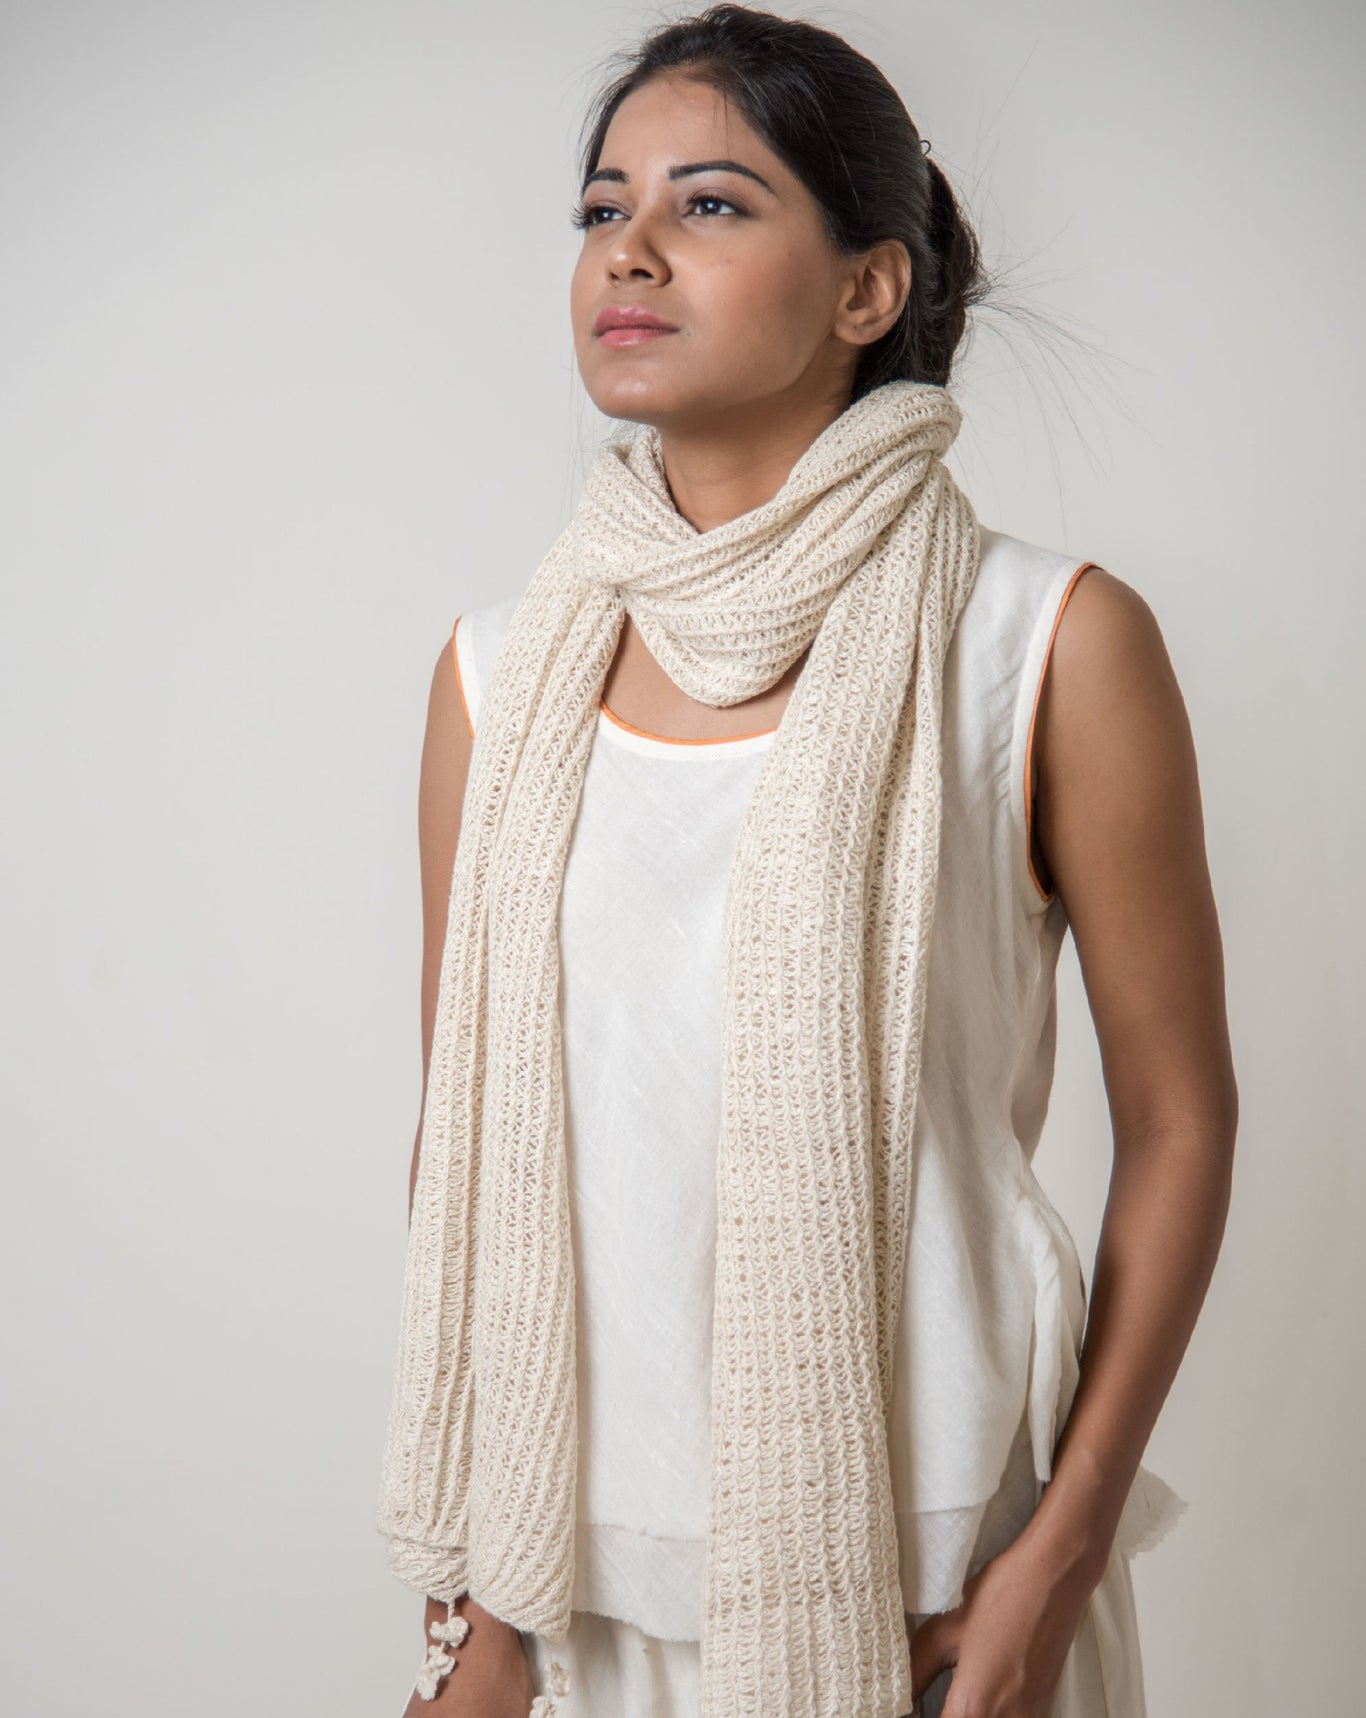 Ereena Knit Lines and Loops Stole EFPAN -08A